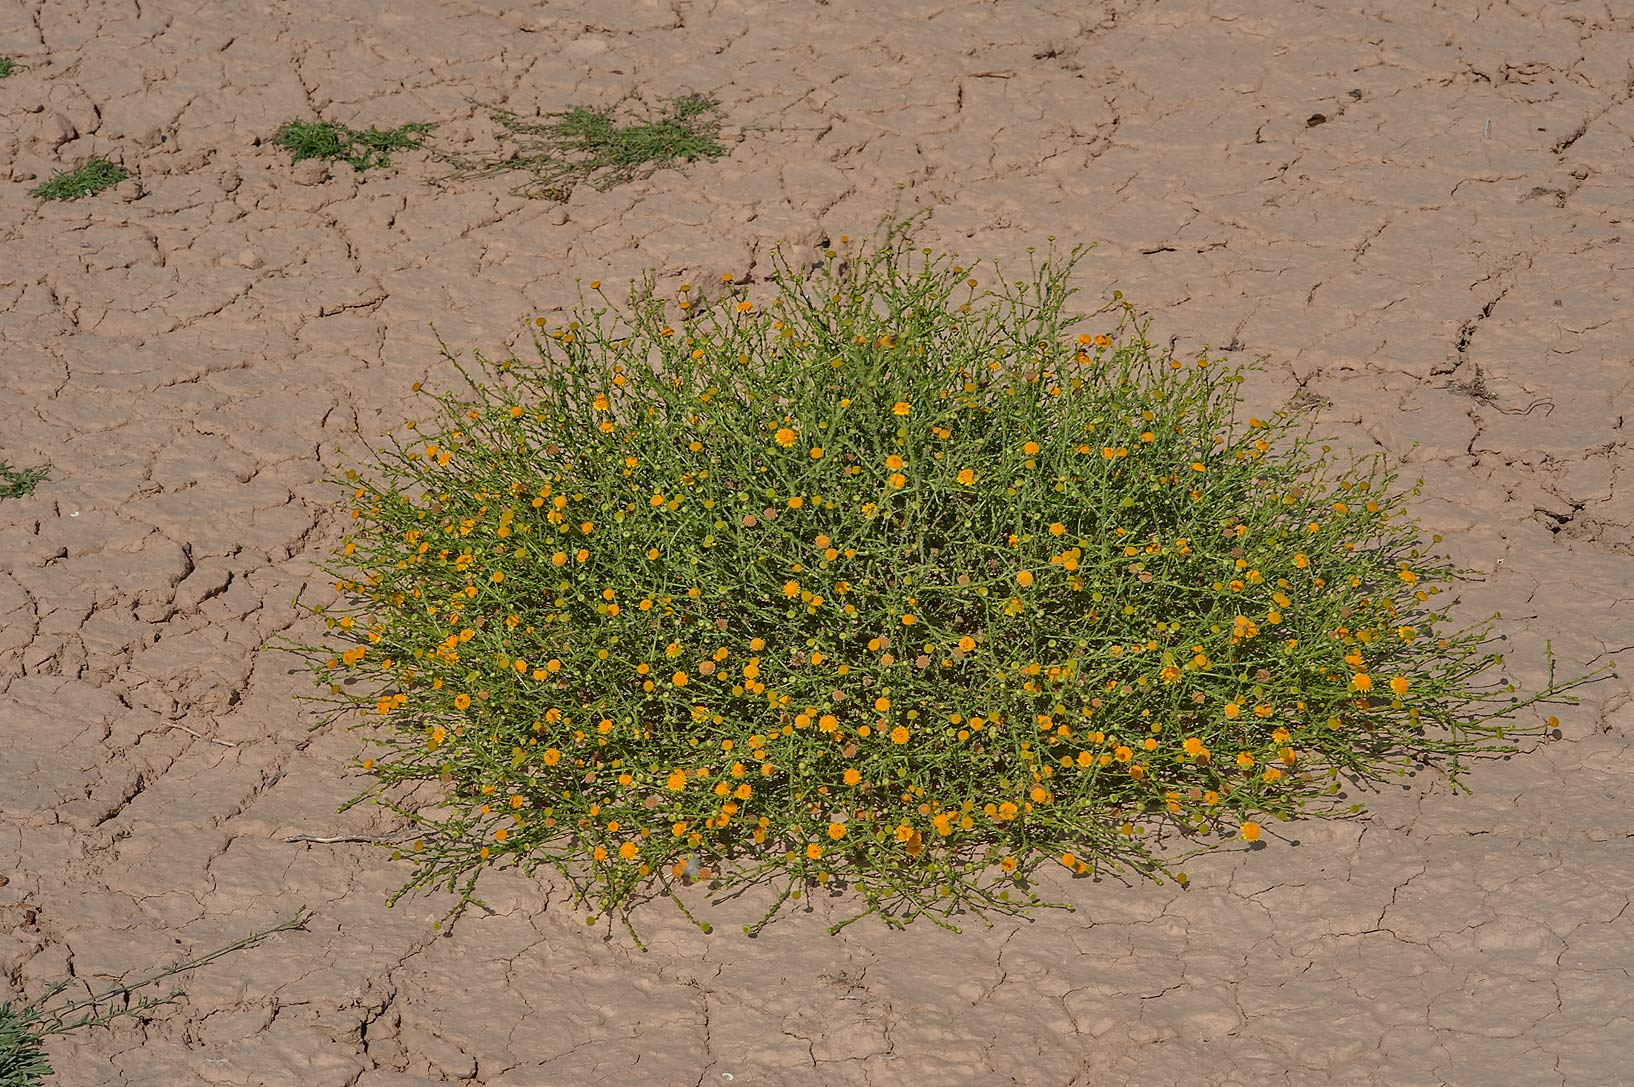 Plant of Pulicaria undulata (local names jithjath...Al Numan) near Zubara. Northern Qatar